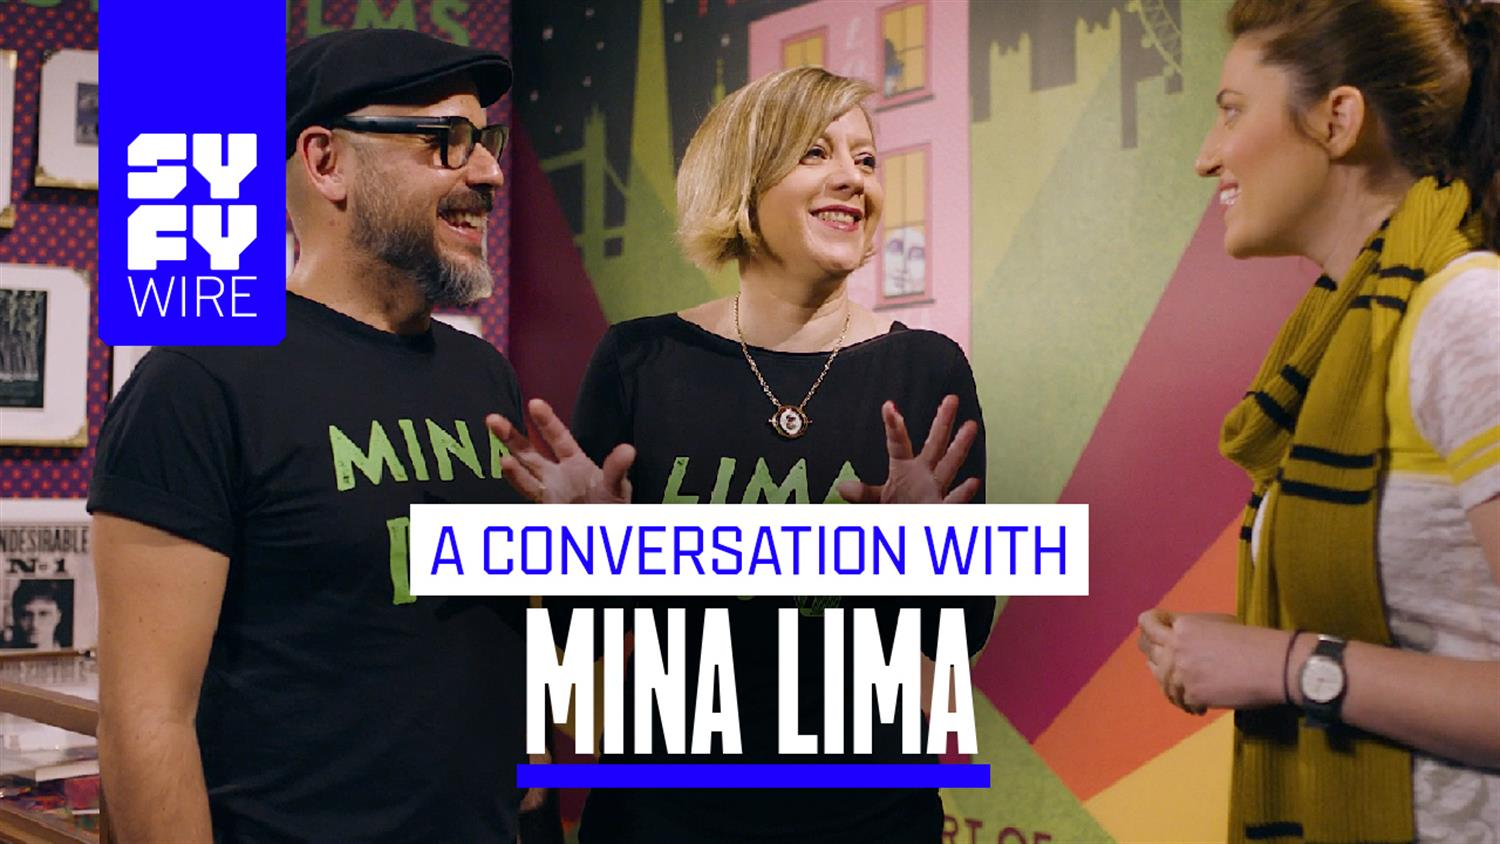 They Design Minds Behind Harry Potter: An Interview with Mina Lima